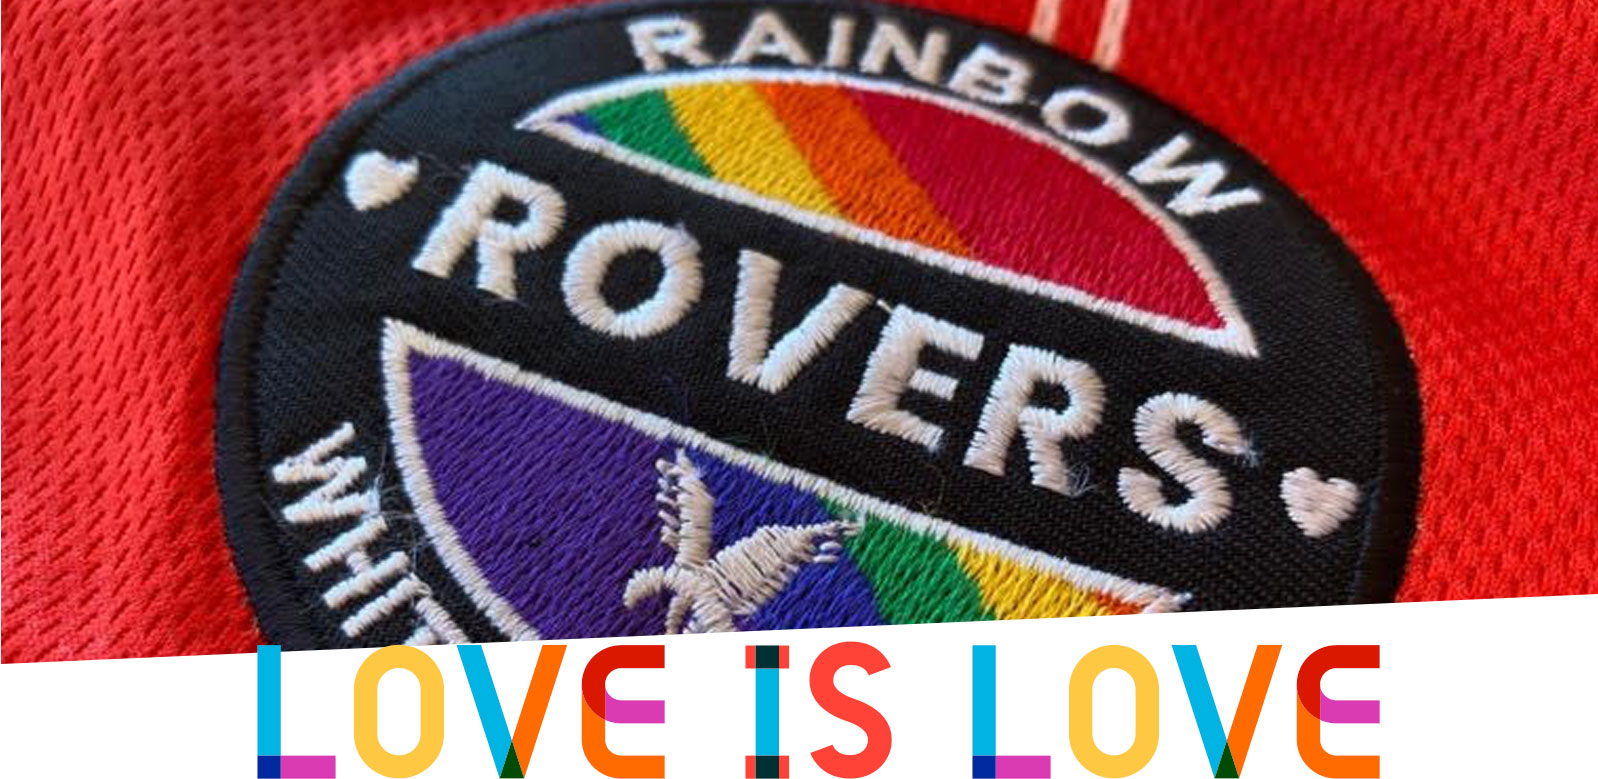 Close-up of the Rainbow Rovers crest on the 2021 shirt, with the tile 'Love is Love' below